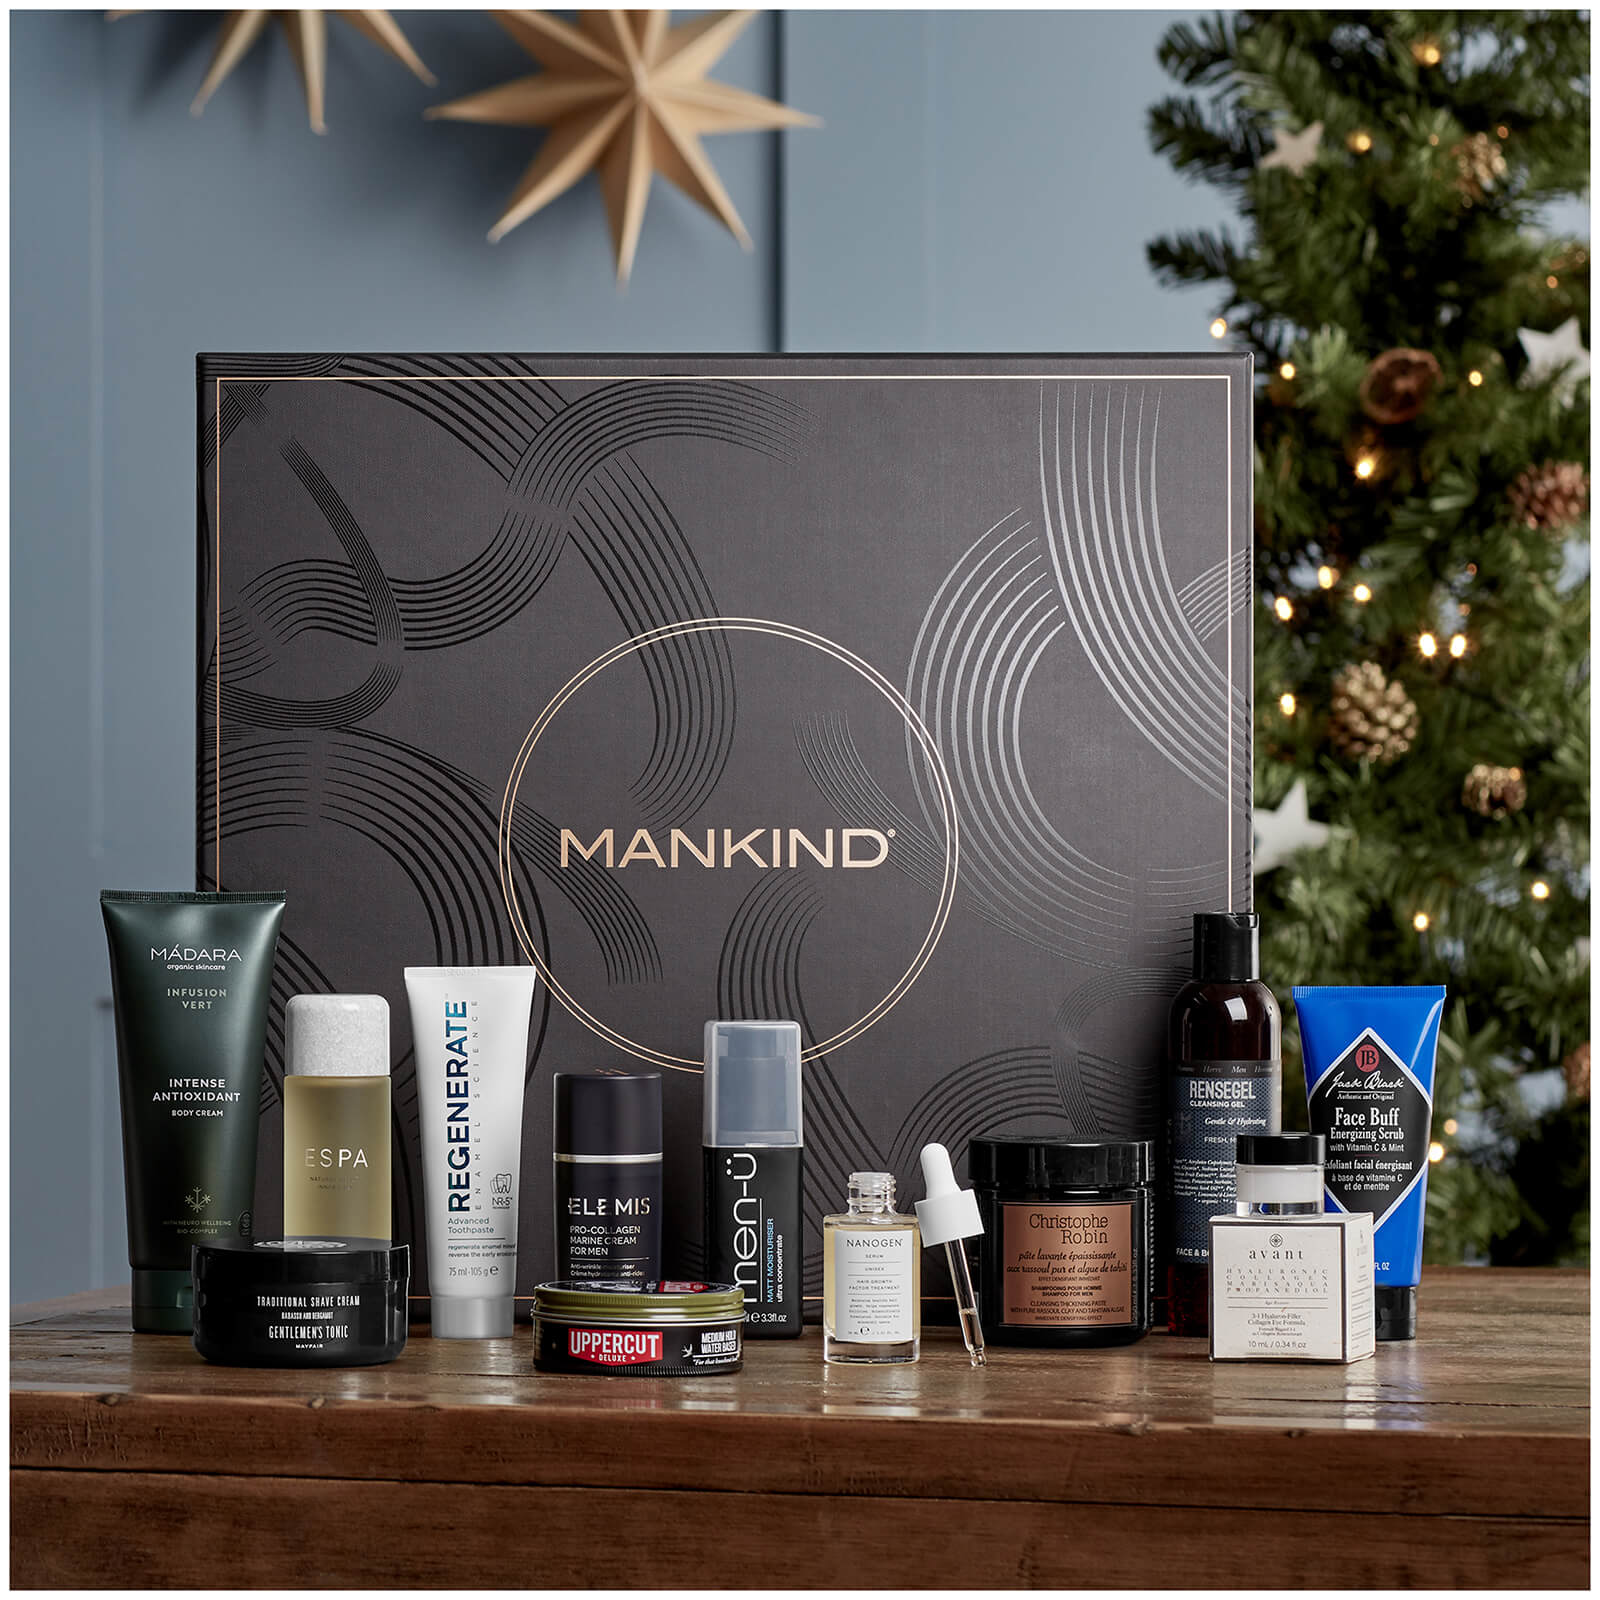 The Mankind Award Winners Collection 2020